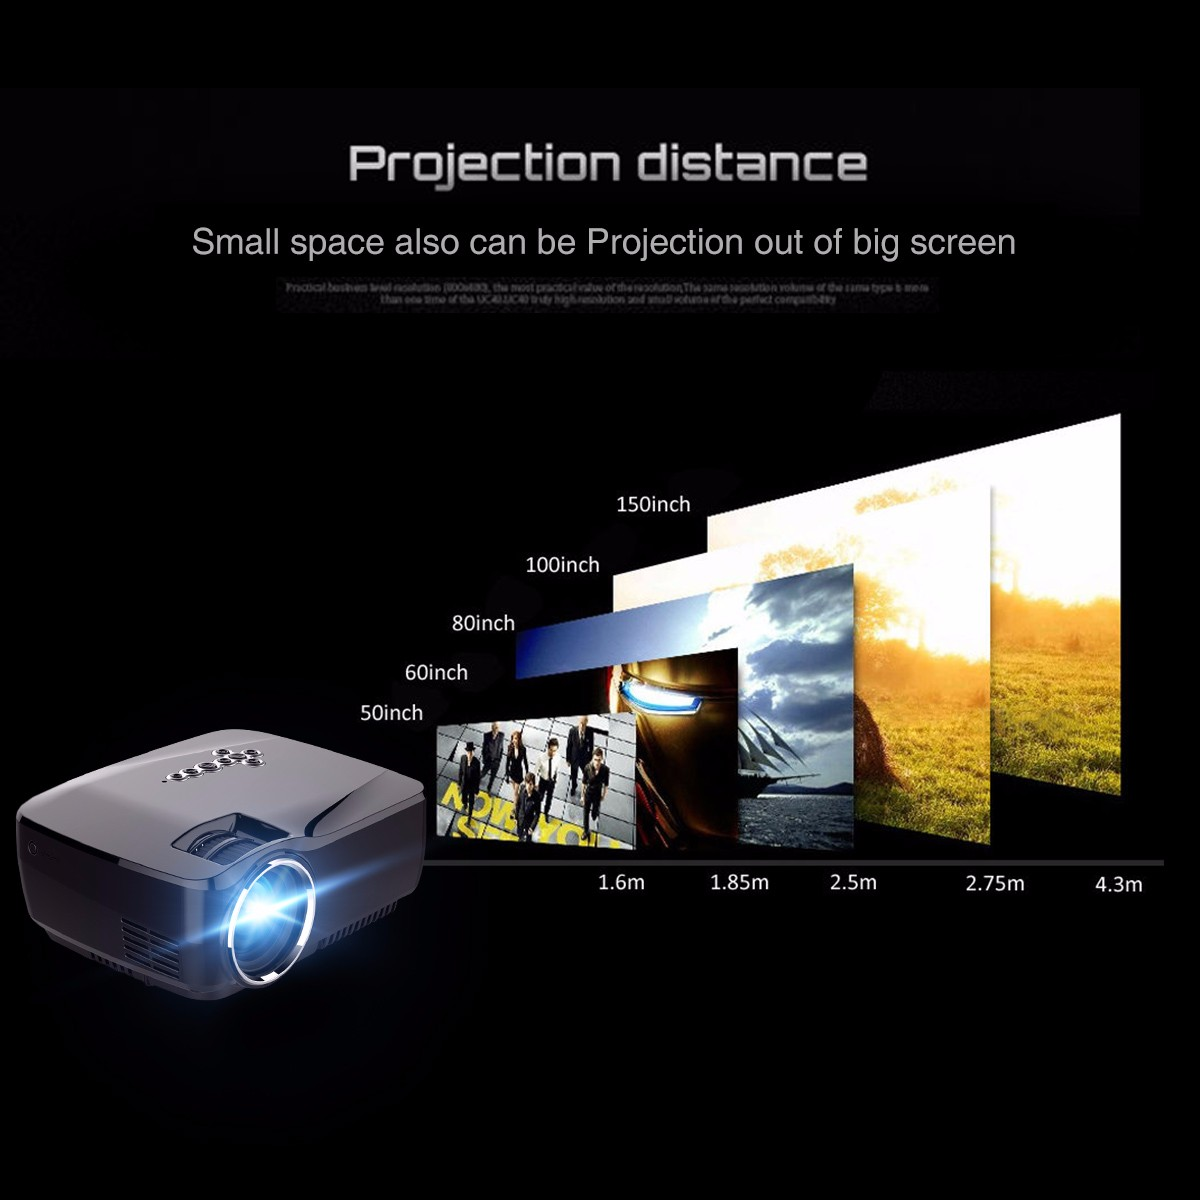 GP70UP Android 4.4 Mini LED Projector Portable HD Beamer for Home Cinema Android WIFI Proyector Smart Optional 1080p Video Проектор